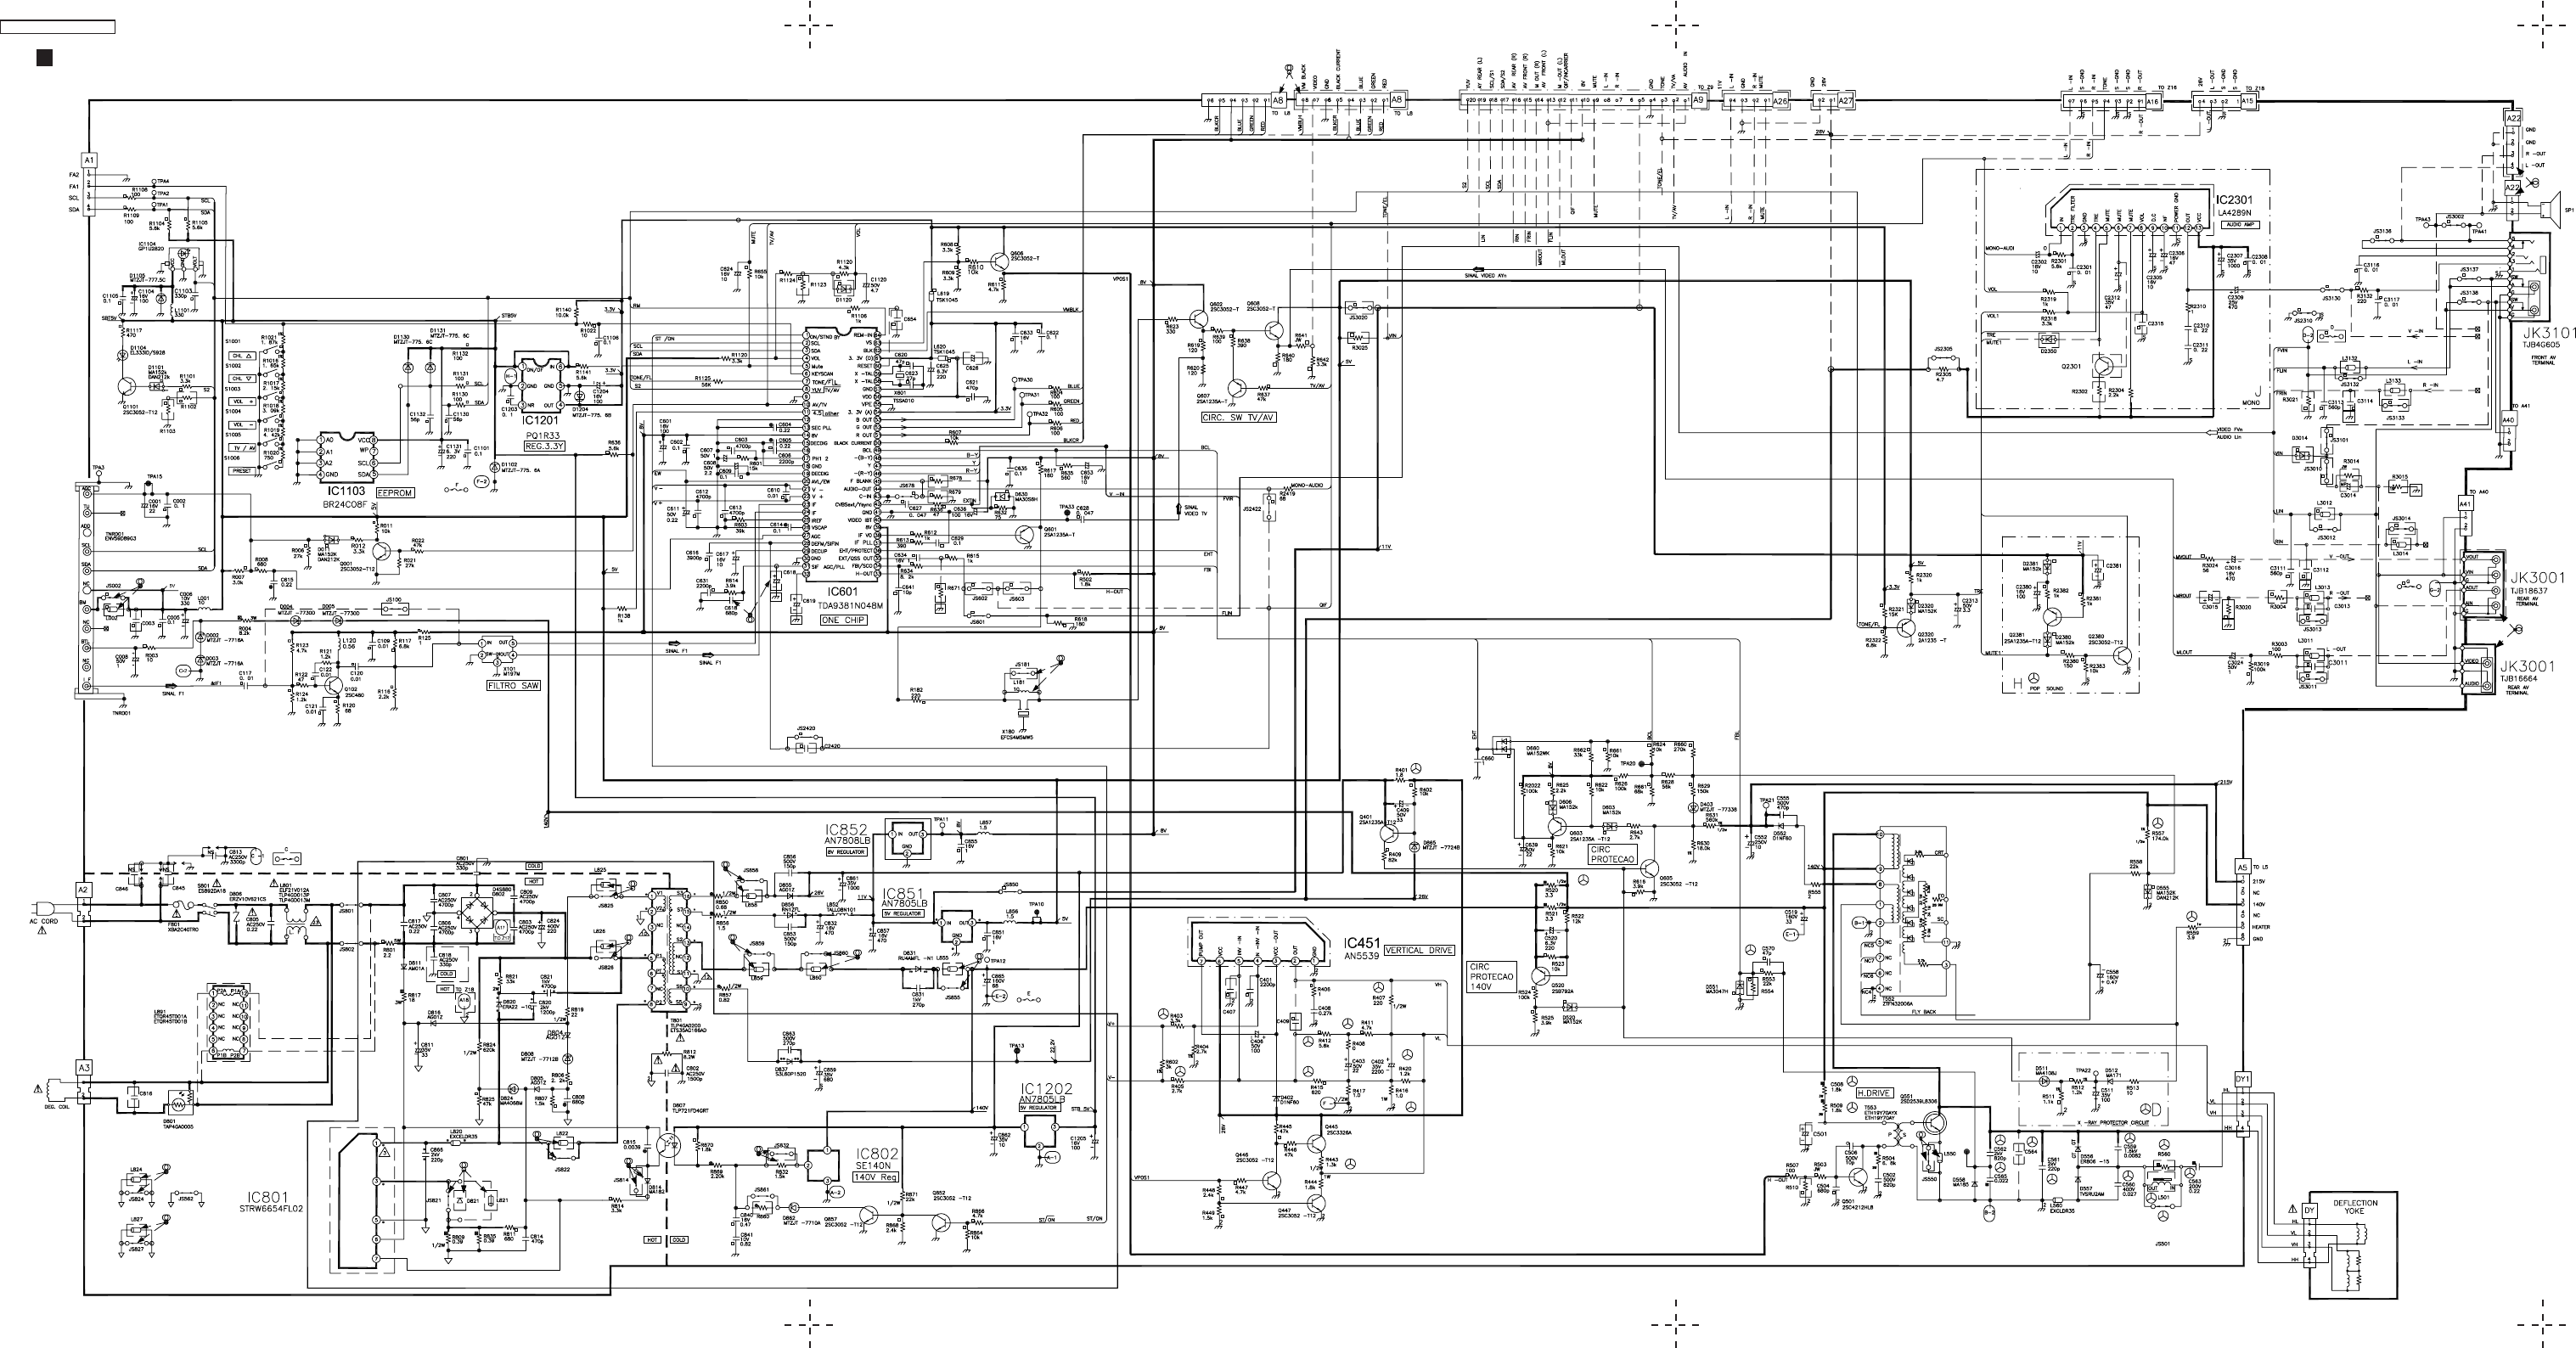 Sharp Crt Tv Schematic Diagram Wiring Panasonic Trusted